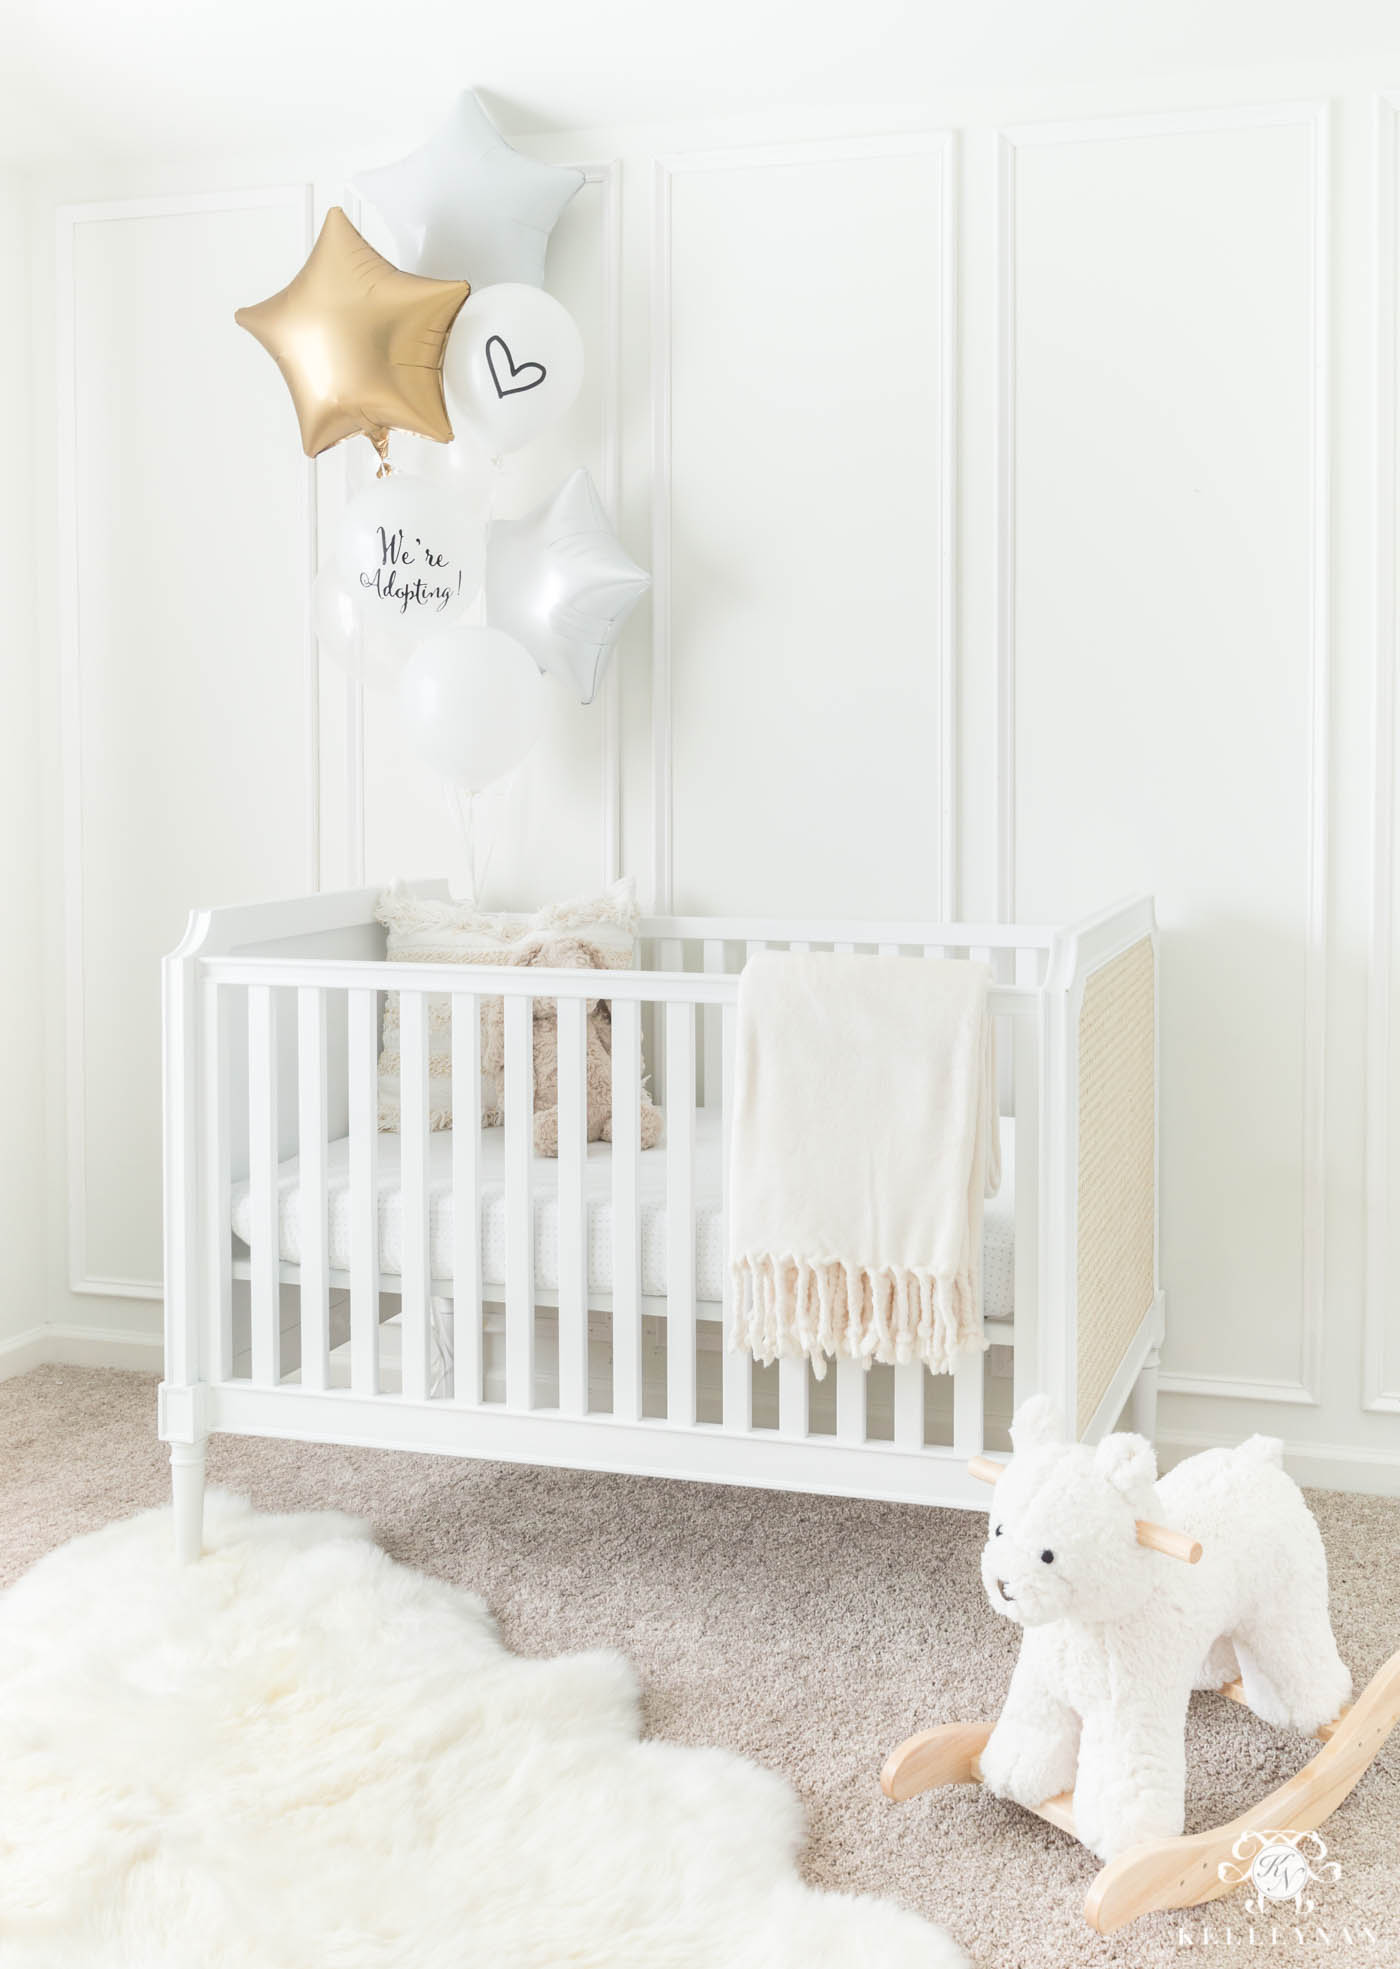 Baby adoption announcement idea using a nursery crib and balloons